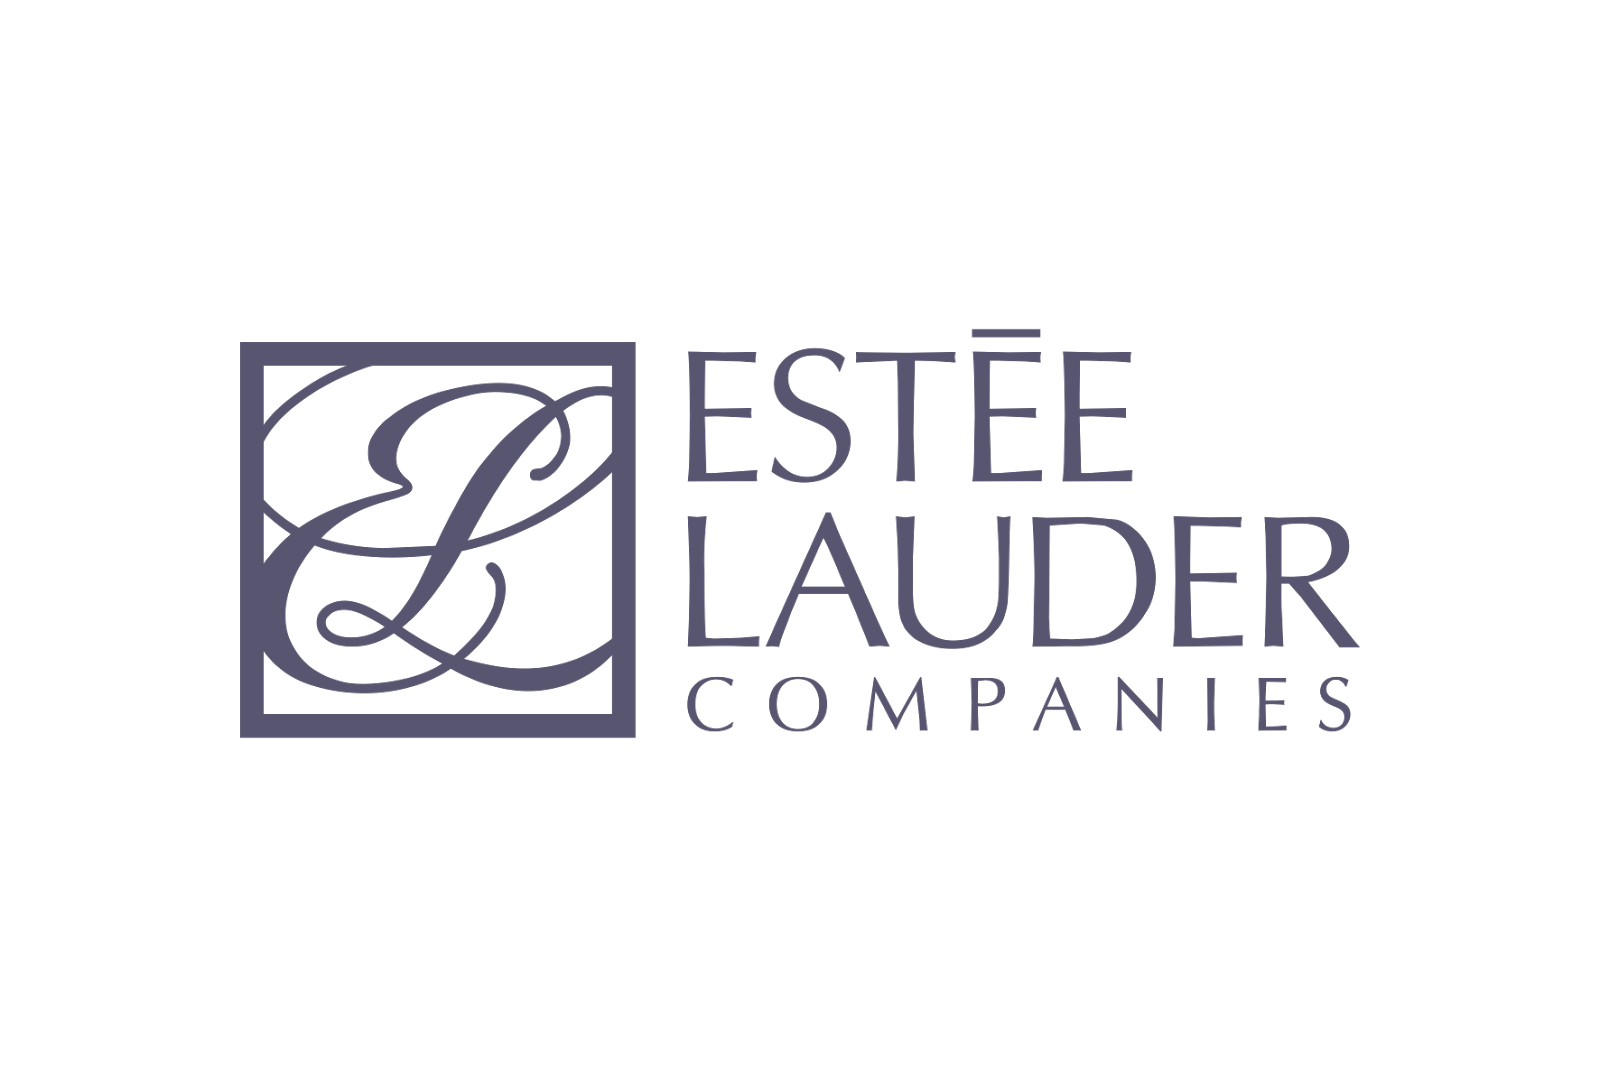 estee lauder inc The estee lauder companies inc manufactures and markets a wide range of skin care, makeup, fragrance, and hair care products the company's products are sold in countries and territories around .